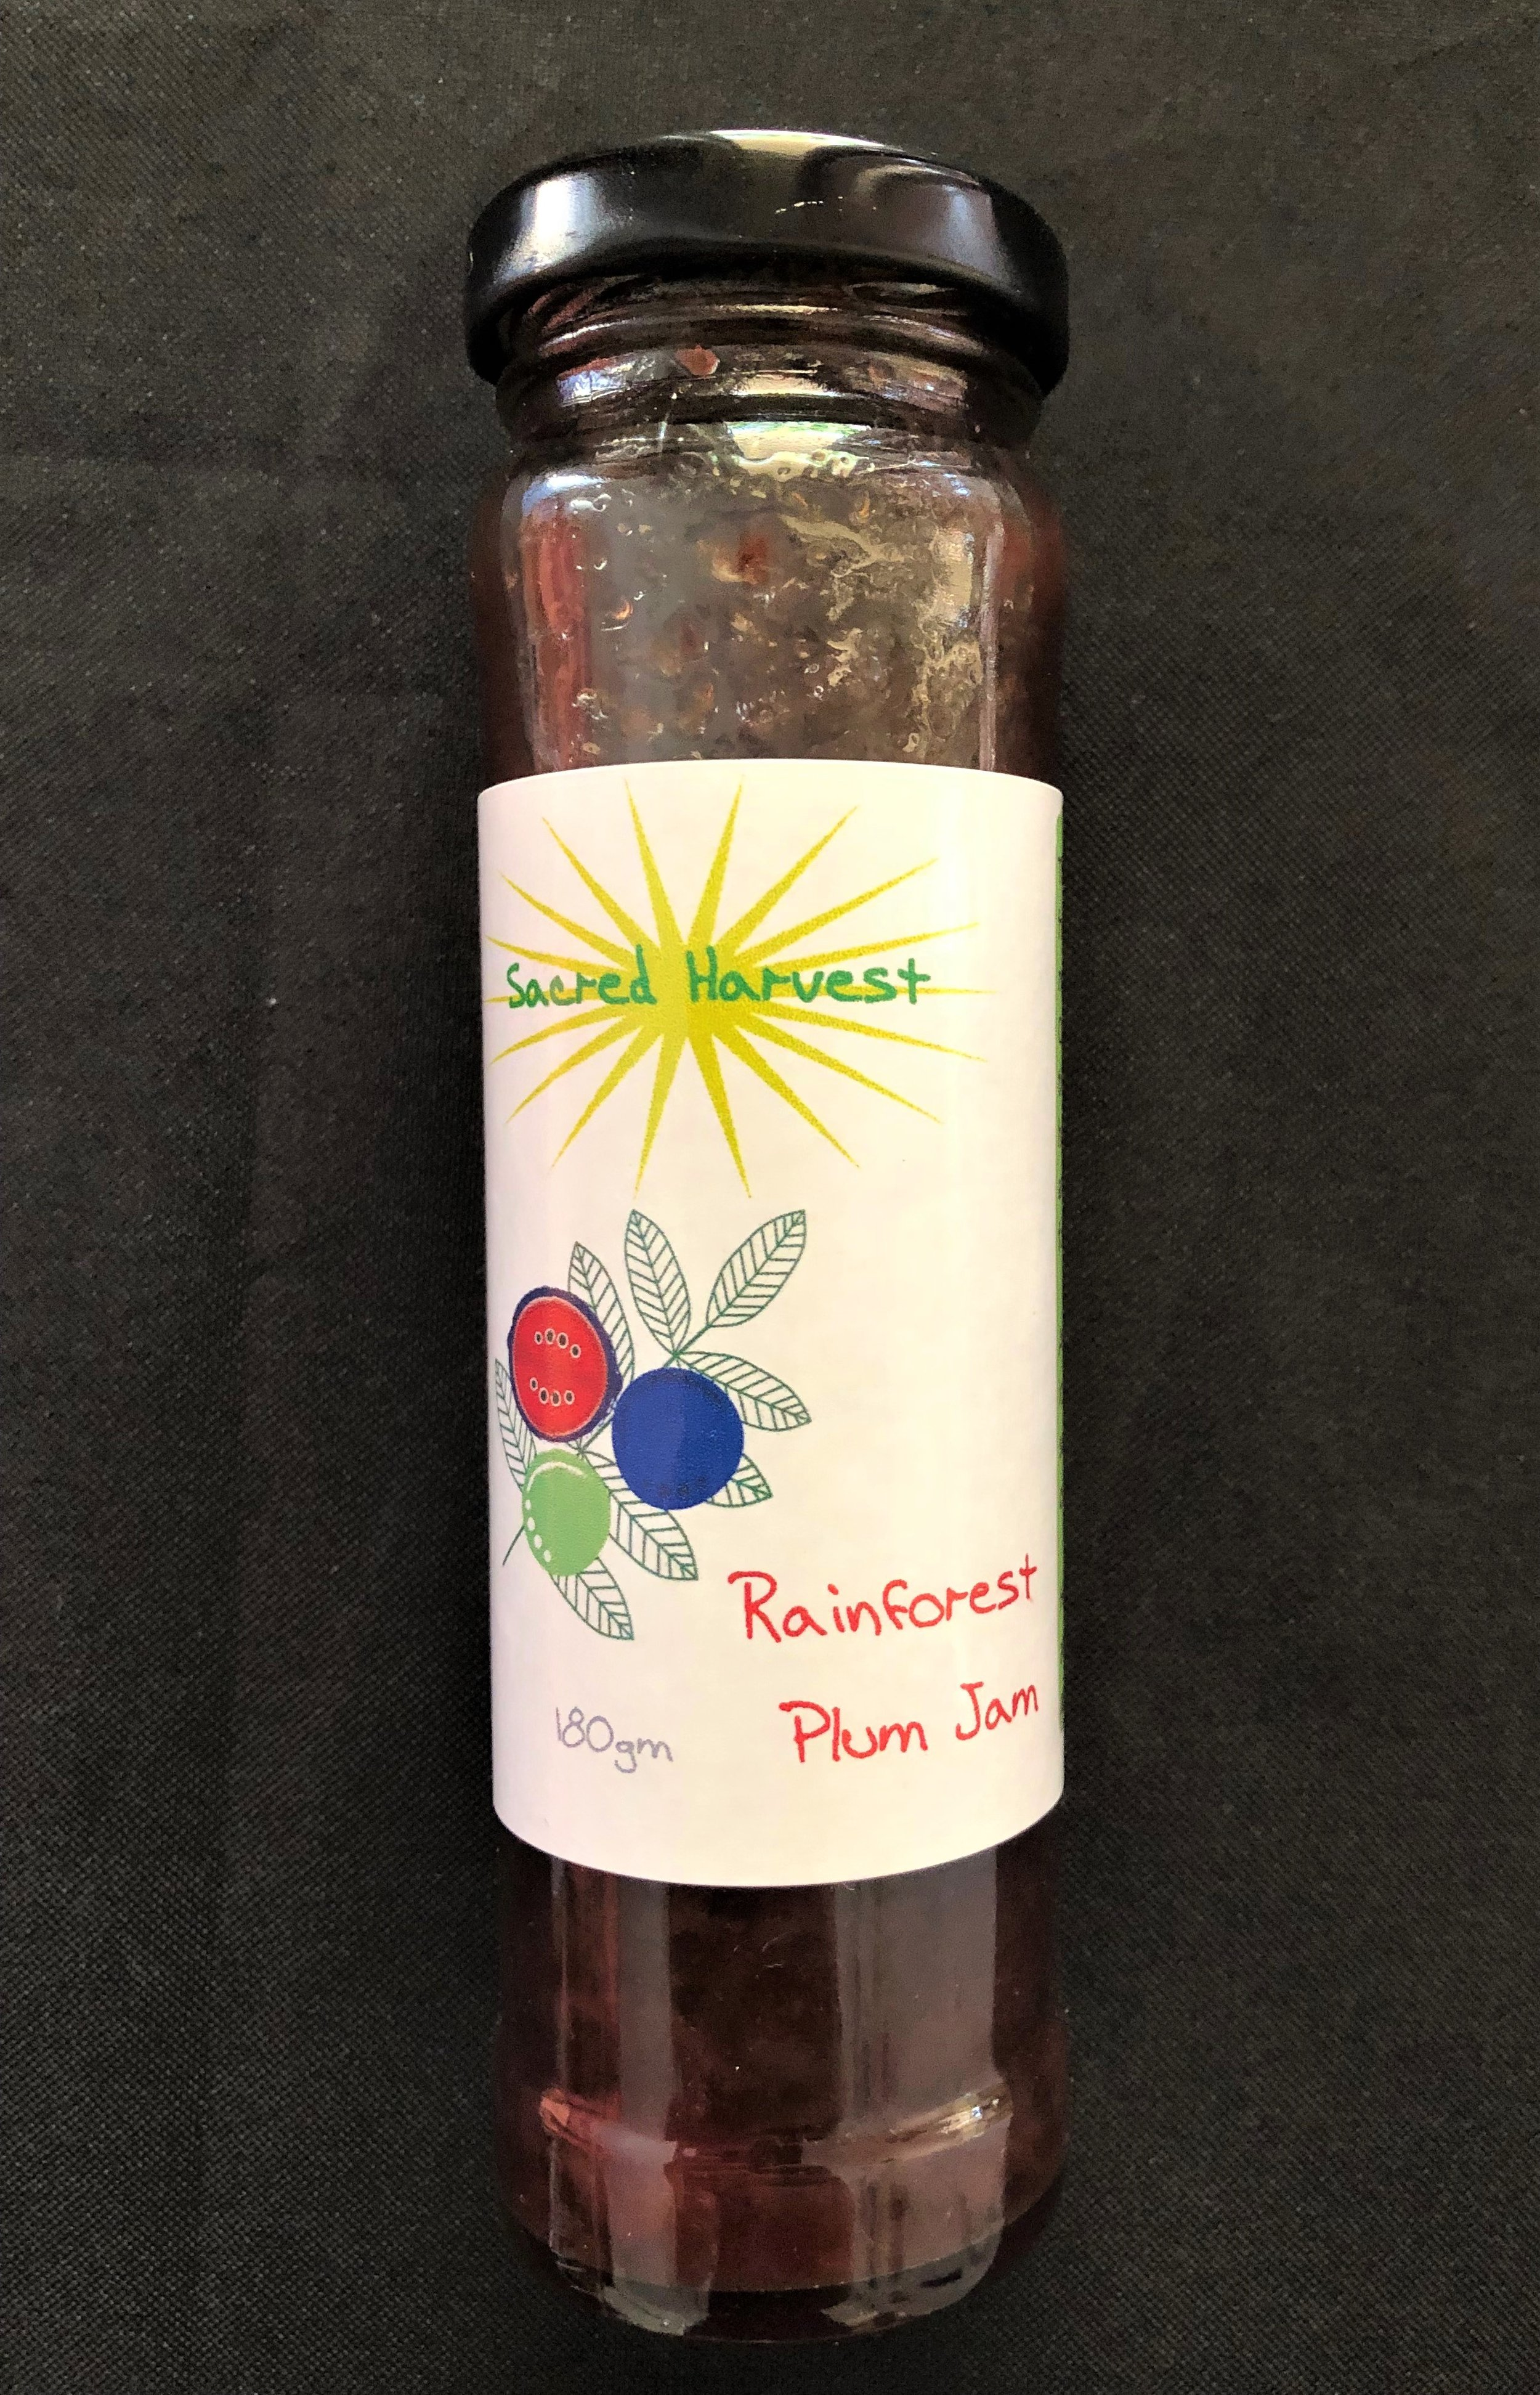 Rainforest Plum Jam - Davidson Plum Jam with a tangy profile, simply serve on toast or use with cheese or cook into sweet biscuits or pork/turkey recipes.